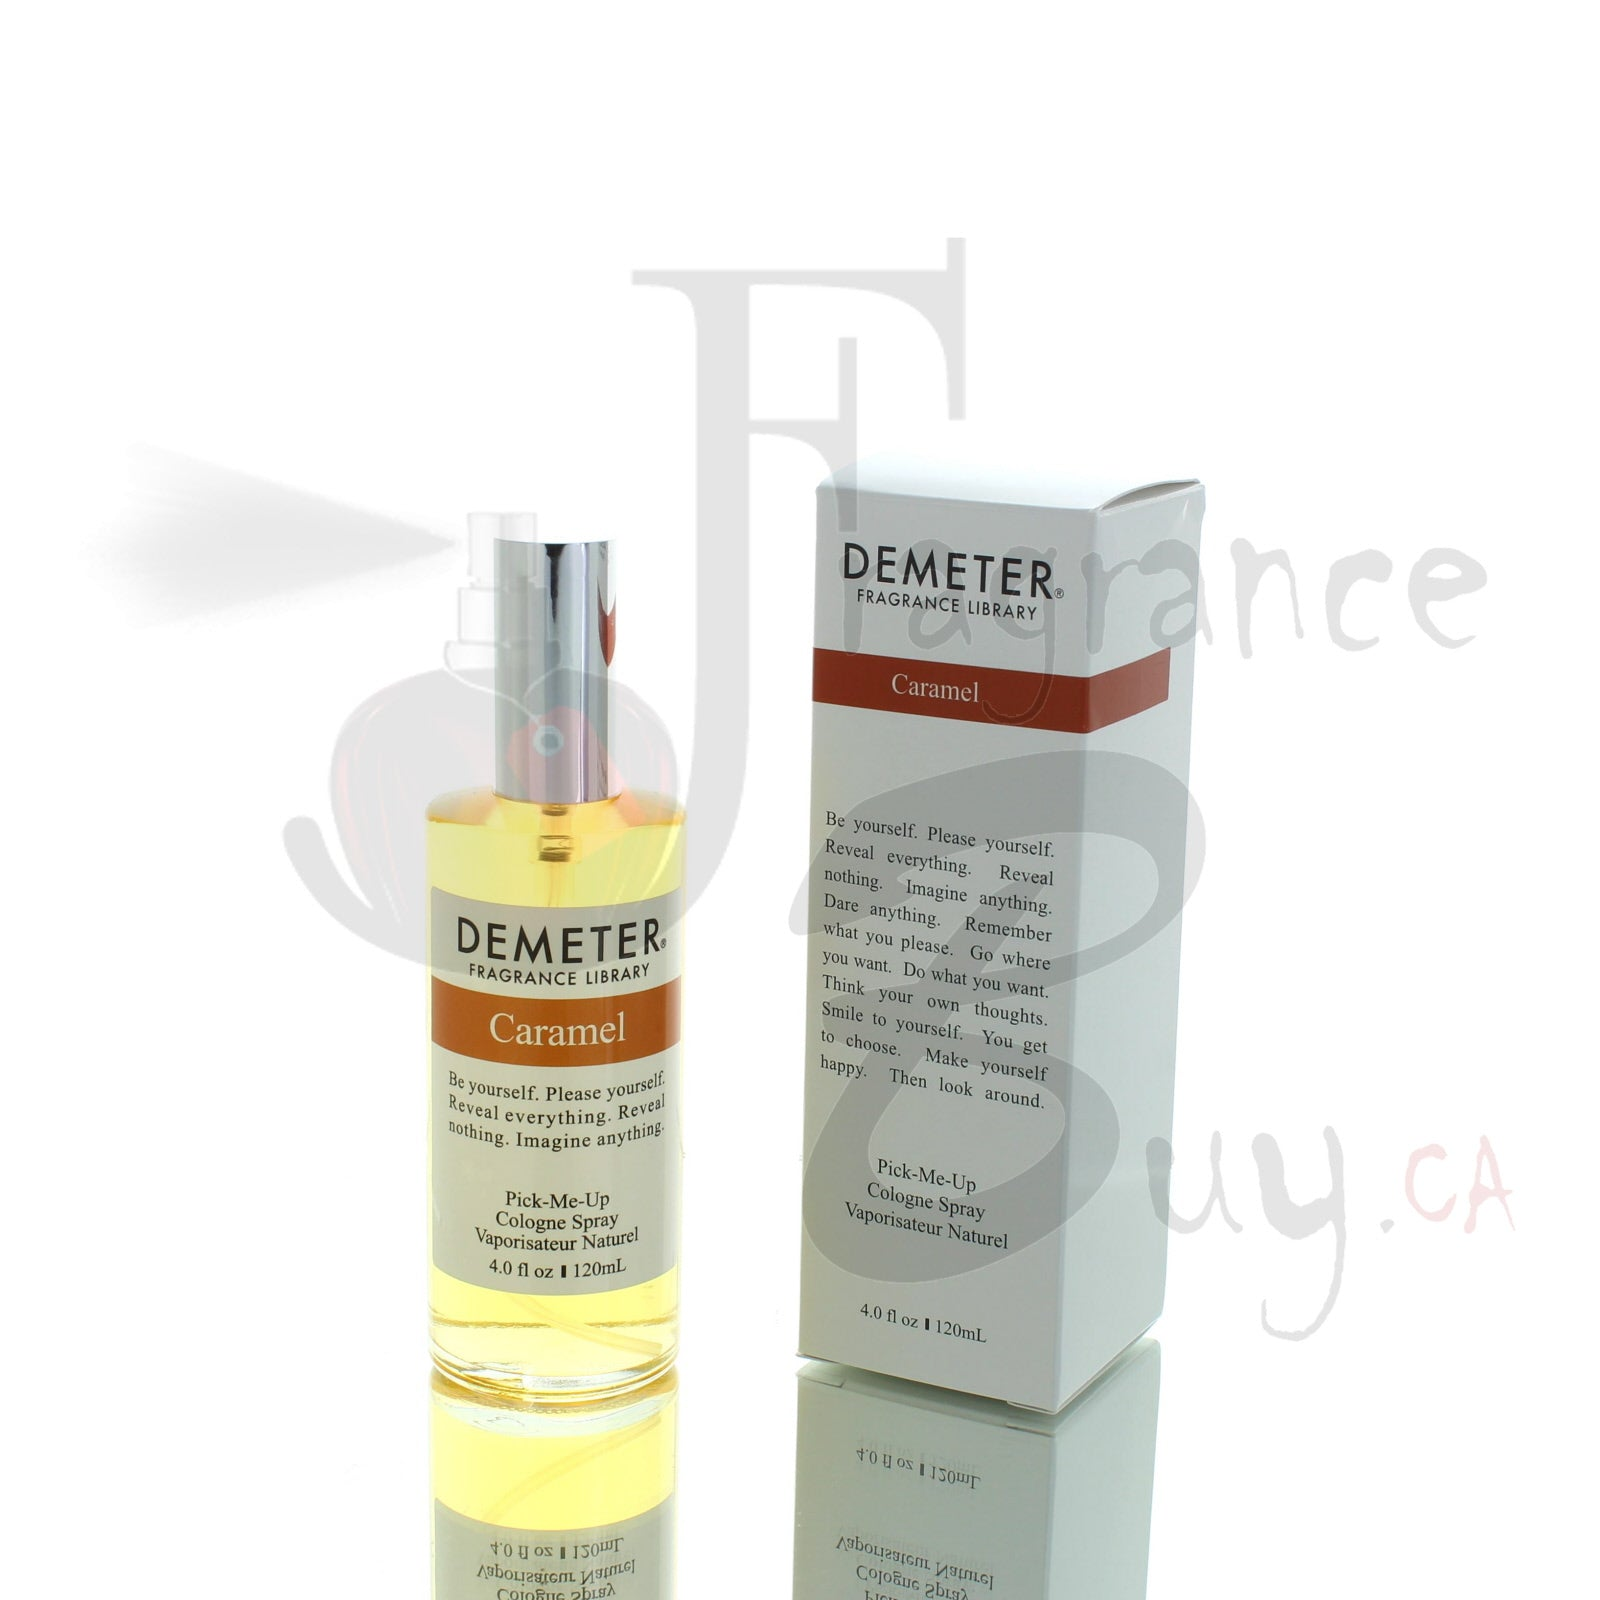 Demeter Caramel For Man/Woman